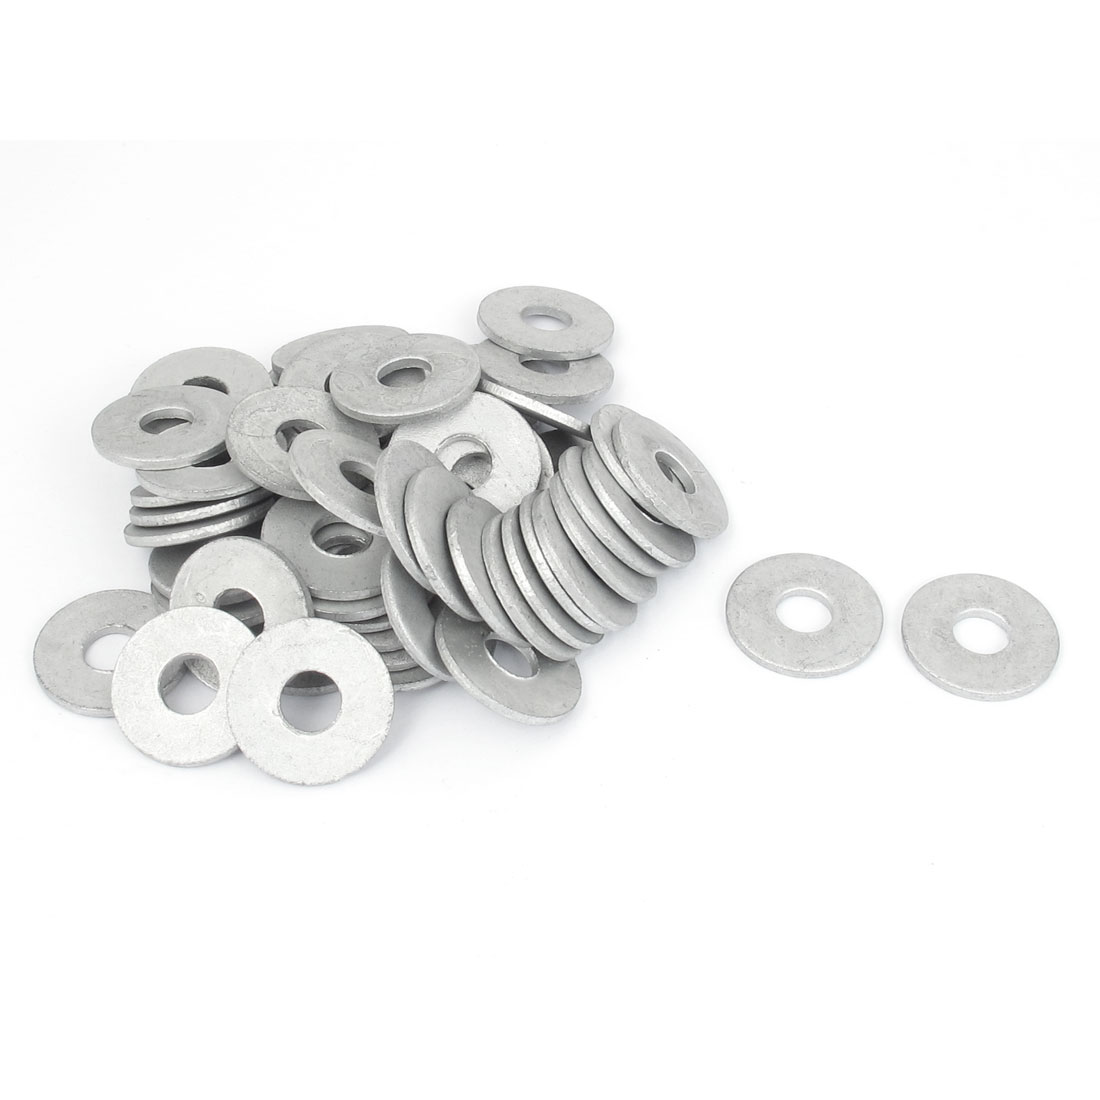 60Pcs M8x24mmx2mm Stainless Steel Metric Round Flat Washer for Bolt Screw